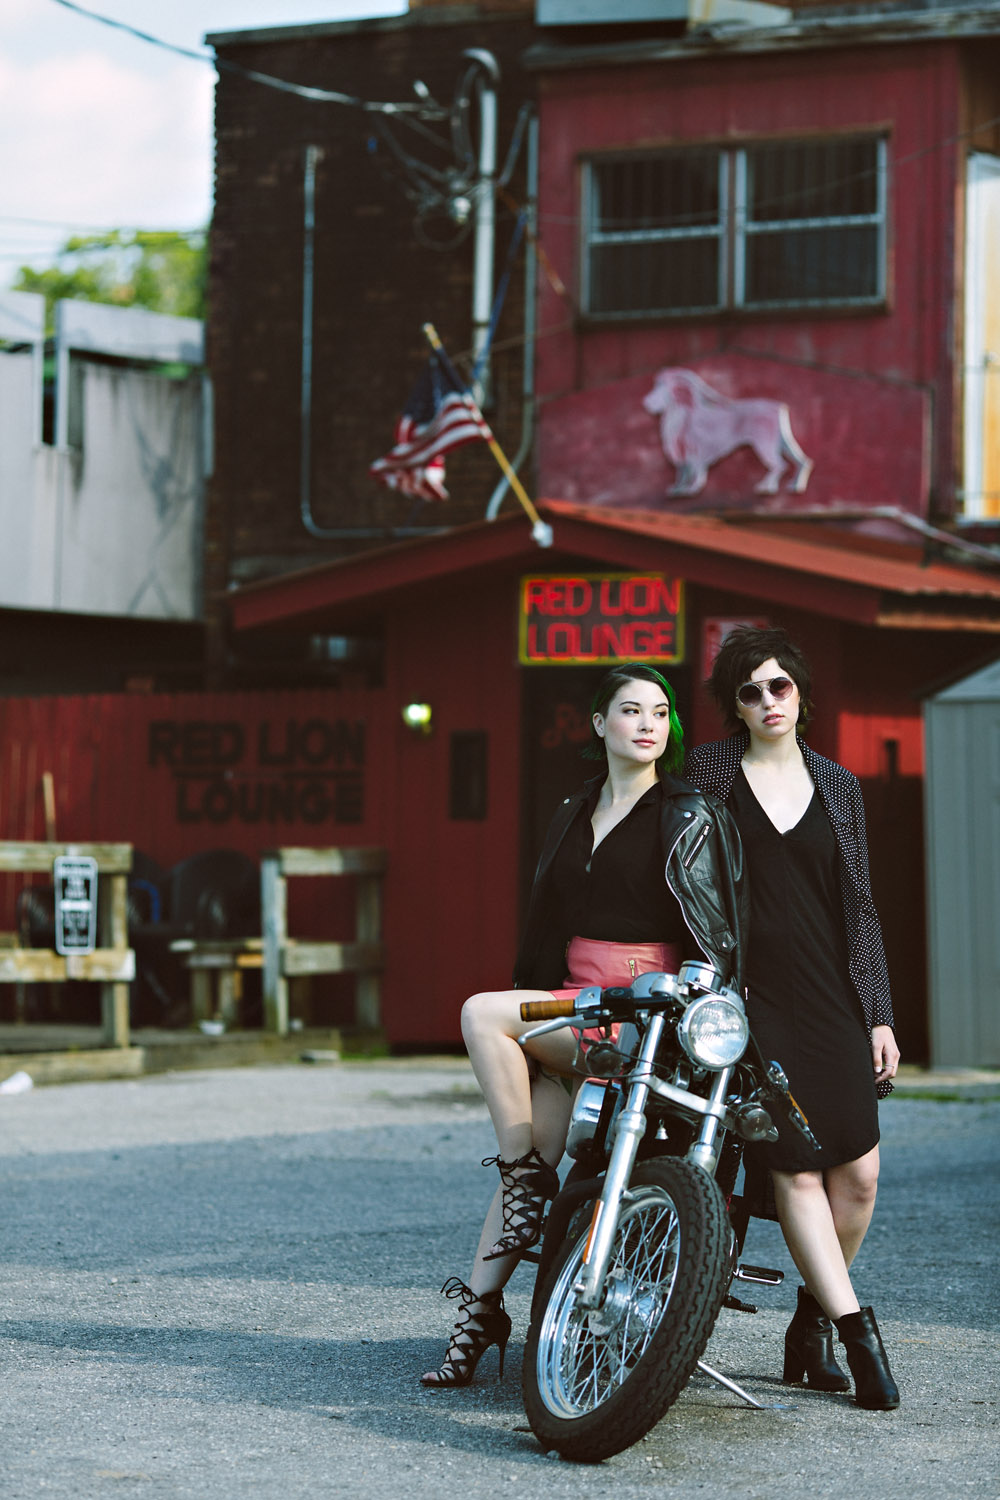 Biker Chic and a Modern Shag at Red Lion